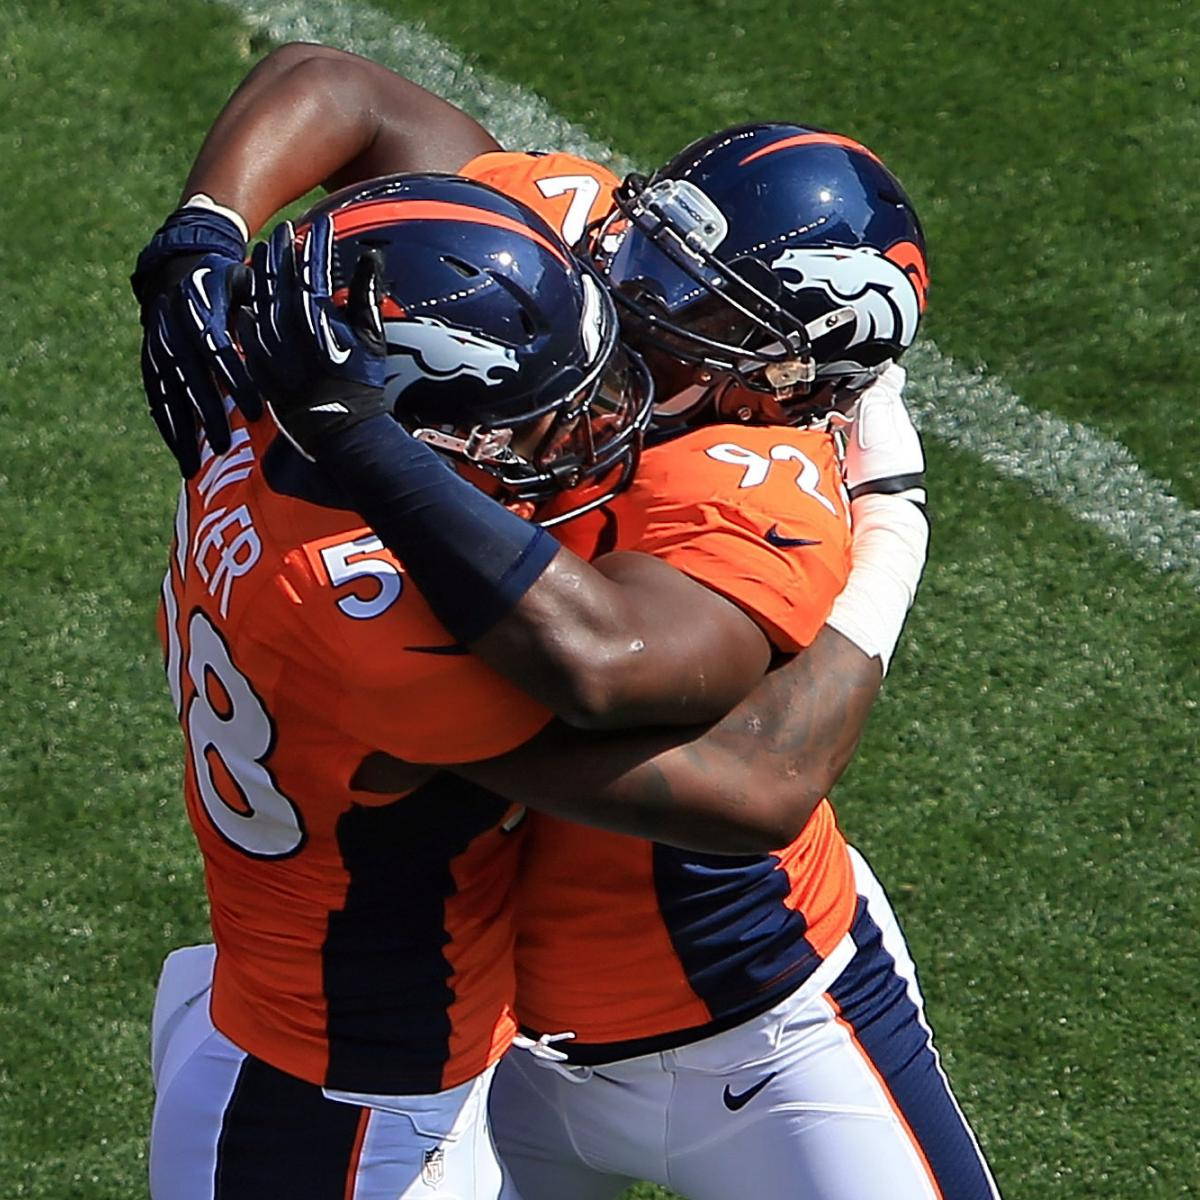 Denver Broncos: Von Miller May Be The NFL's New King Of